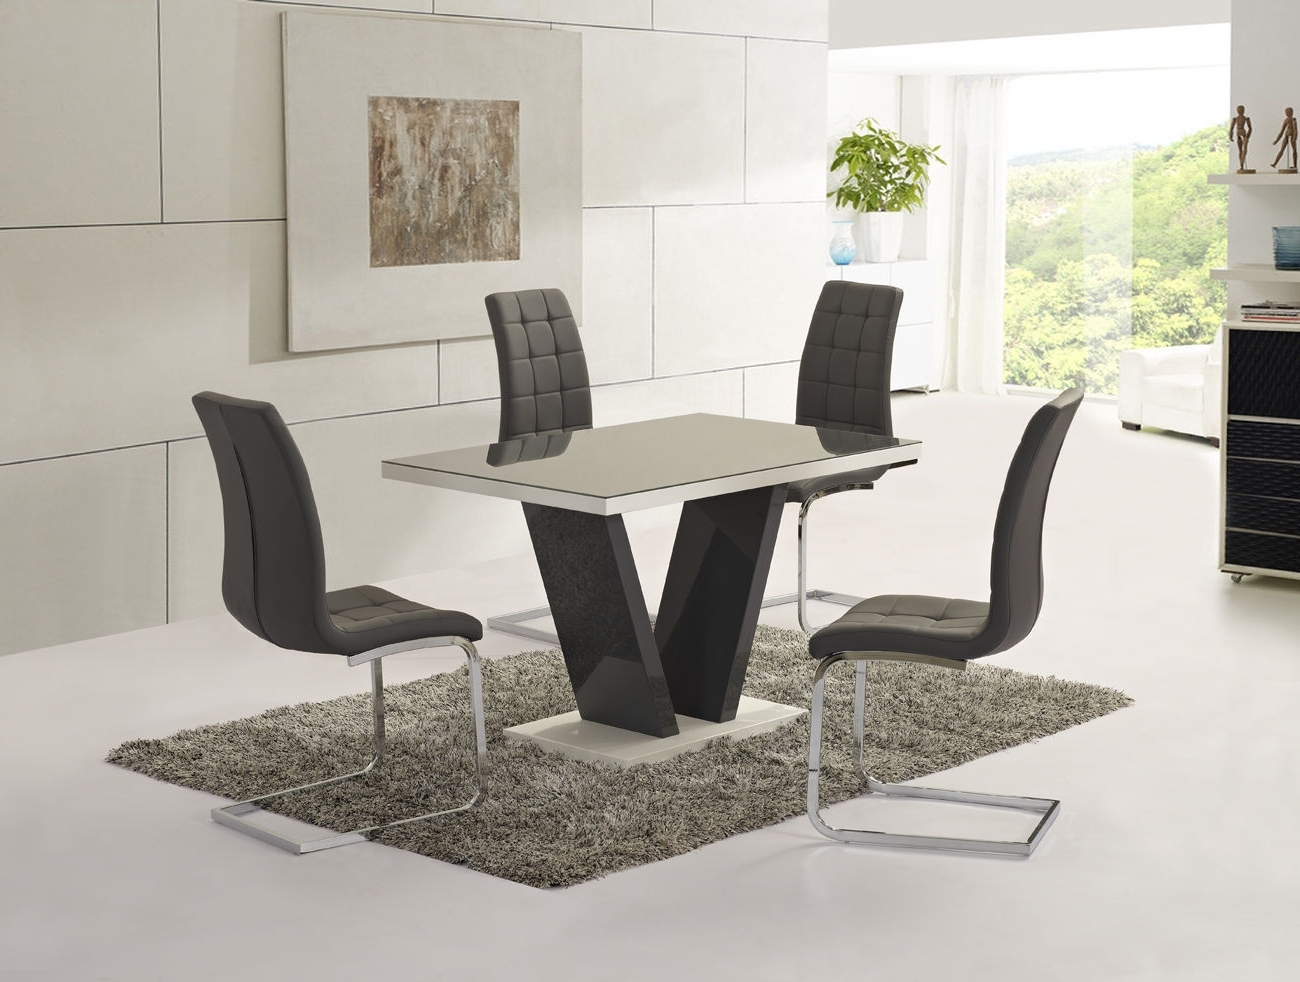 Recent Ga Vico Gloss Grey Glass Top Designer 160Cm Dining Set – 4 6 Grey Within Glass Dining Tables With 6 Chairs (View 20 of 25)